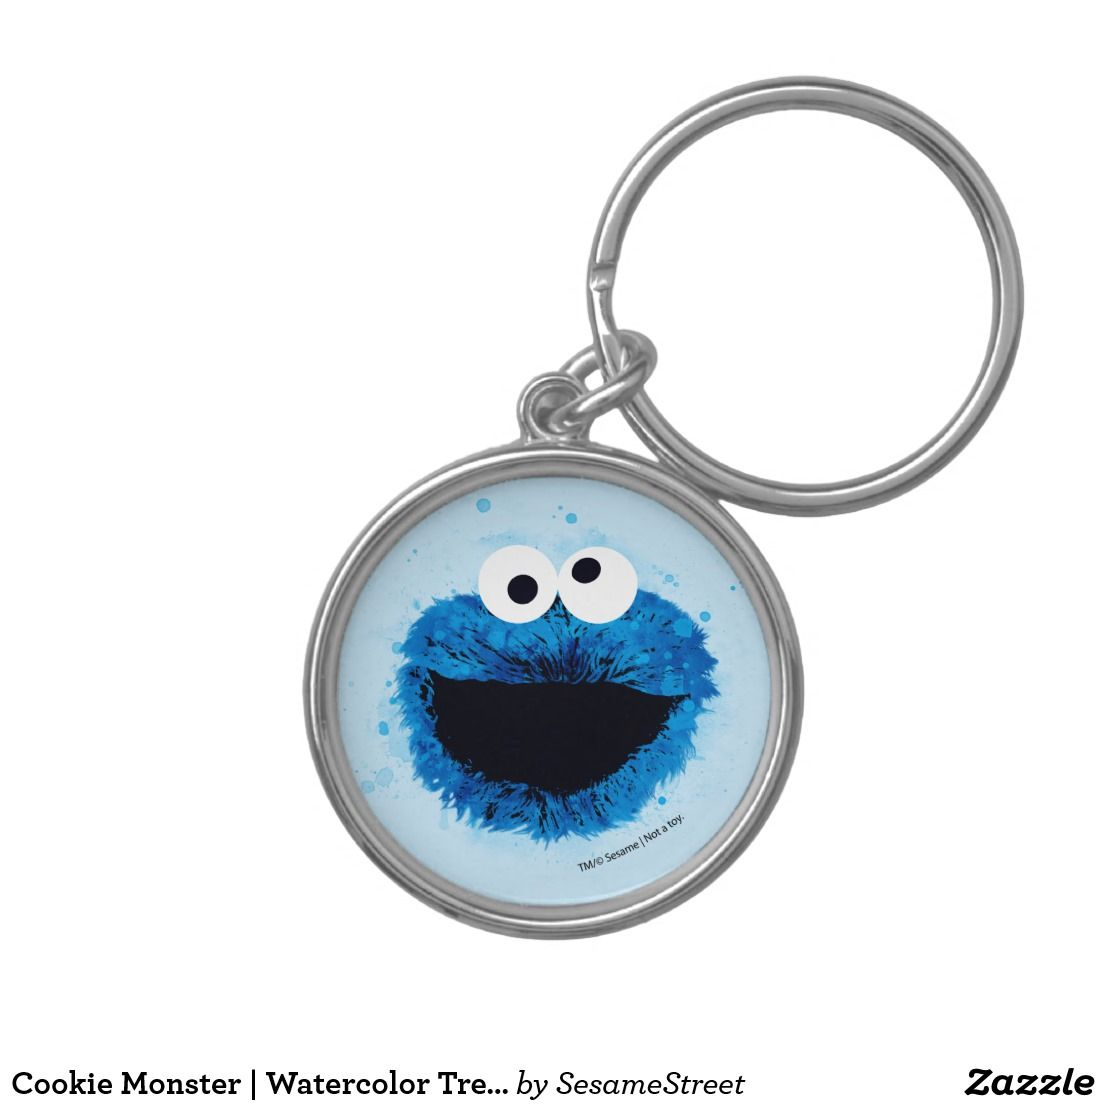 Cookie Monster Watercolor Trend Keychain Zazzle Com